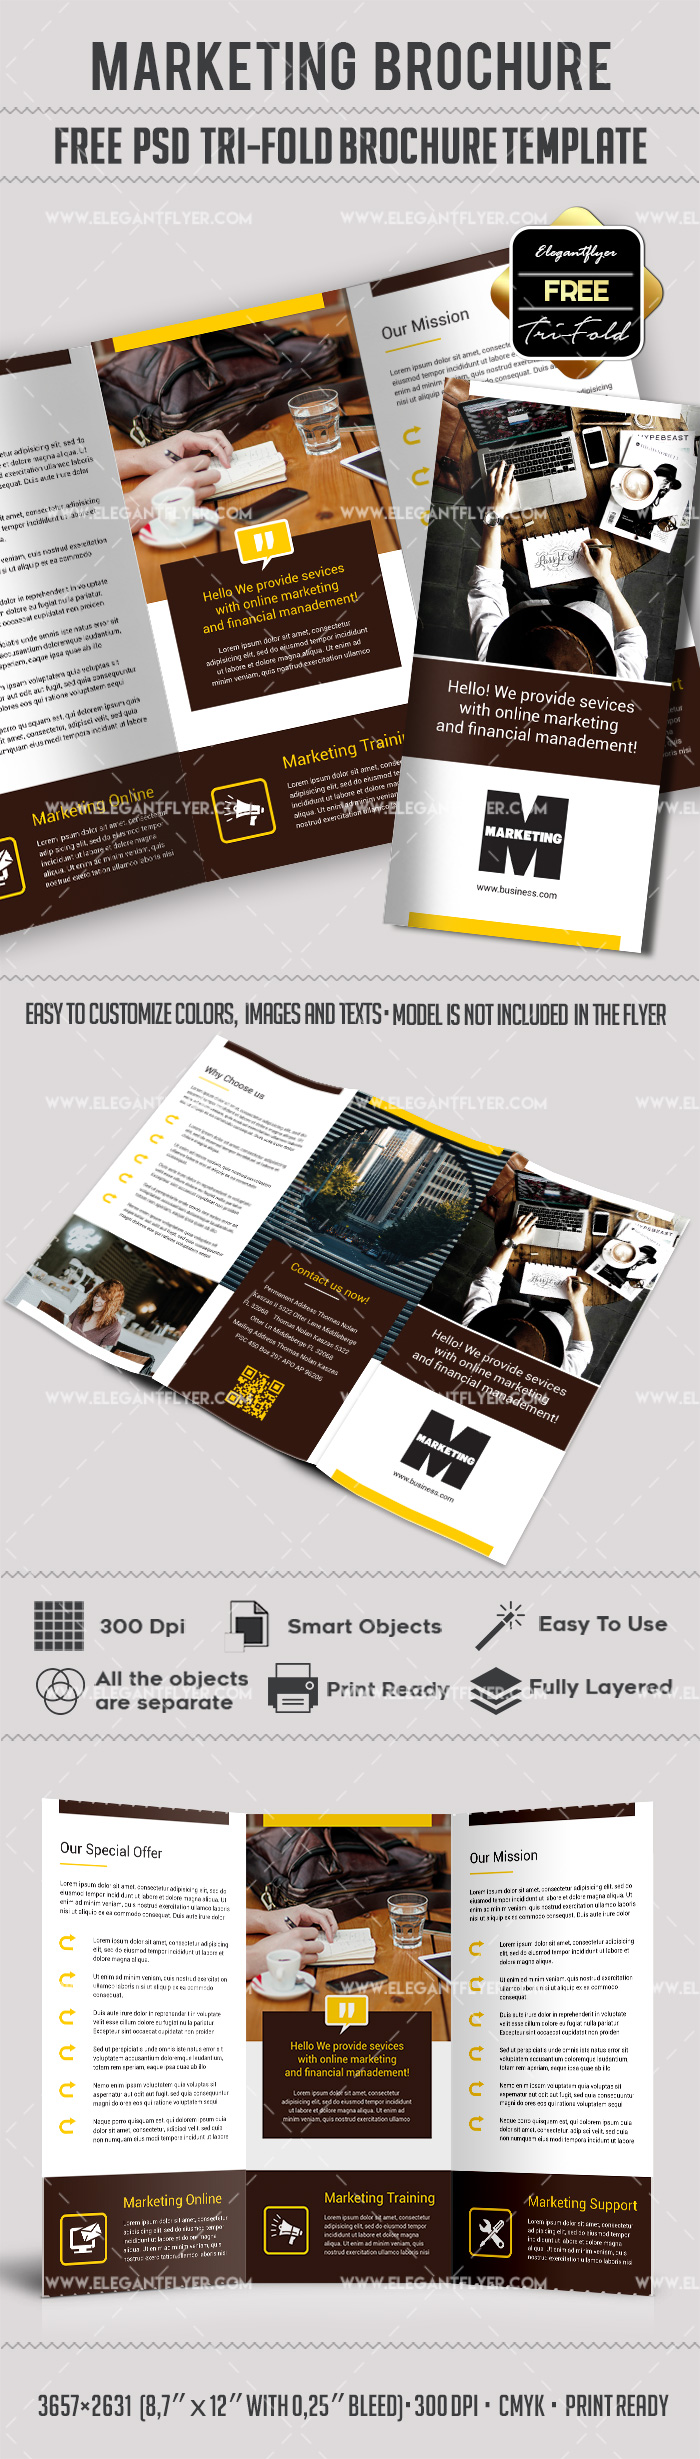 Marketing free tri fold psd brochure template by for Marketing brochure template